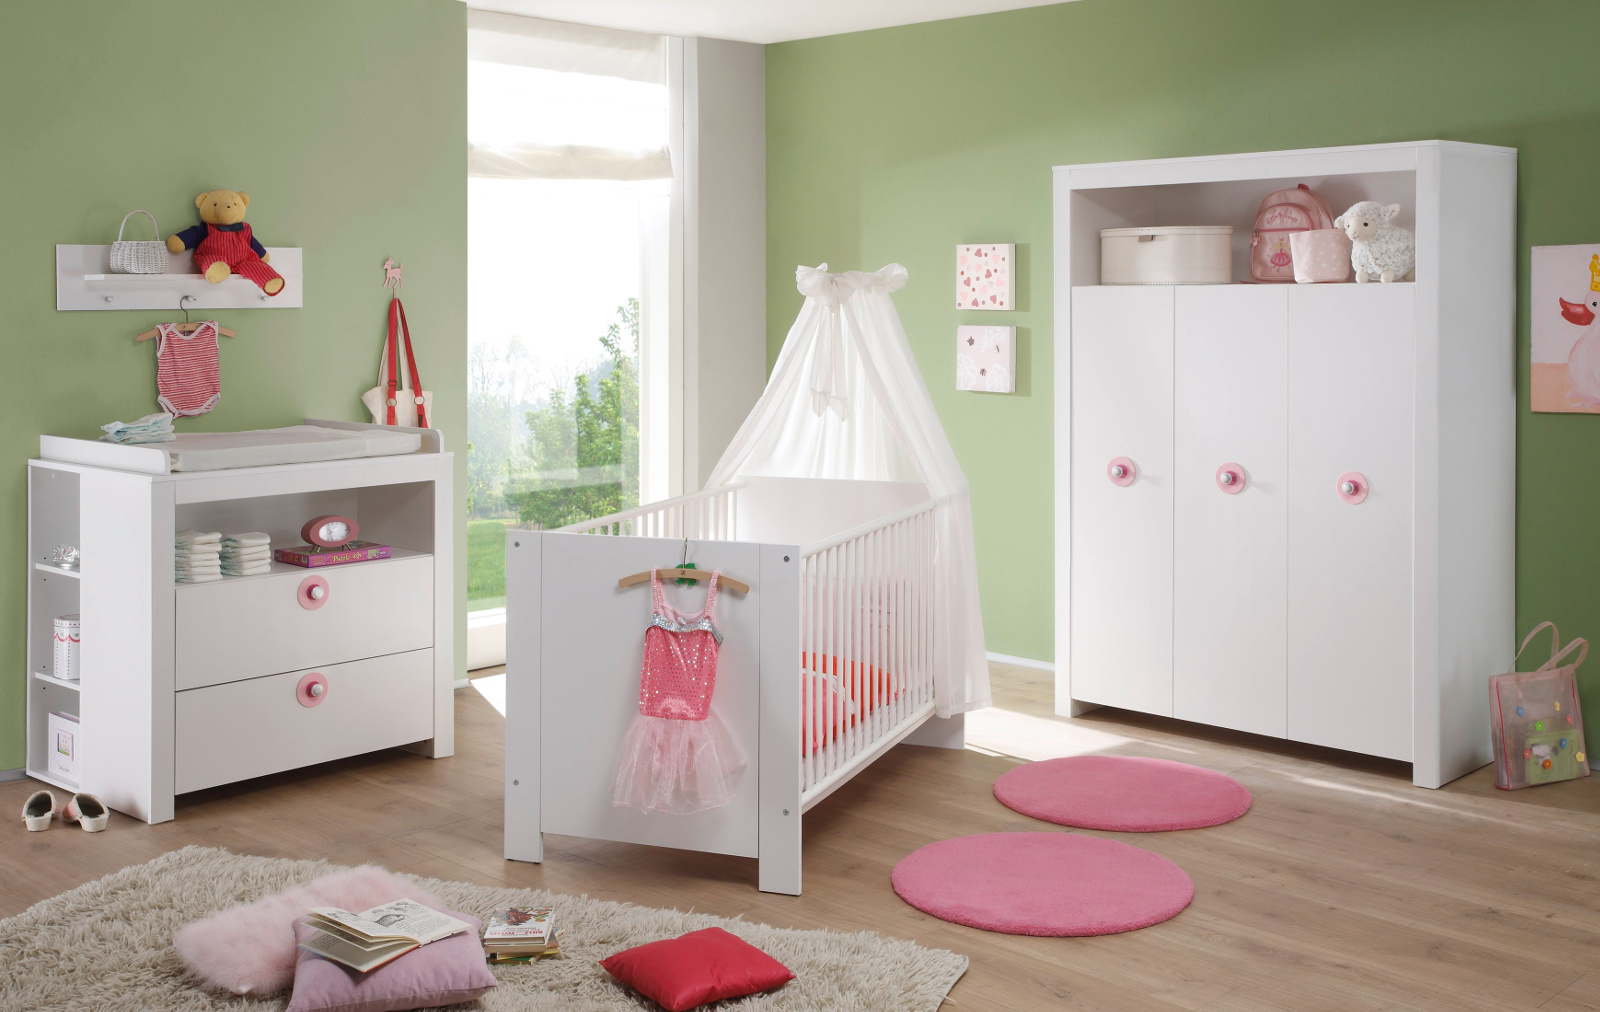 babyzimmer olivia 5 teilig mit regalen wei design. Black Bedroom Furniture Sets. Home Design Ideas